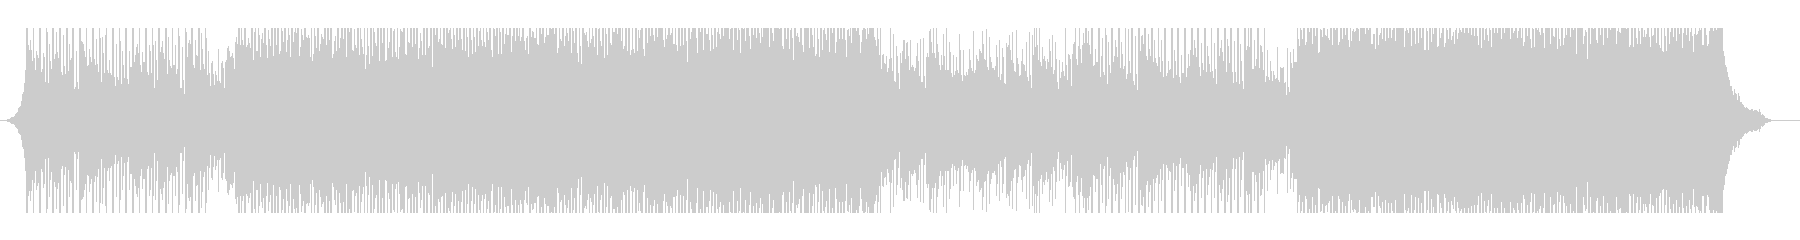 The Aspire's unreproduced waveform